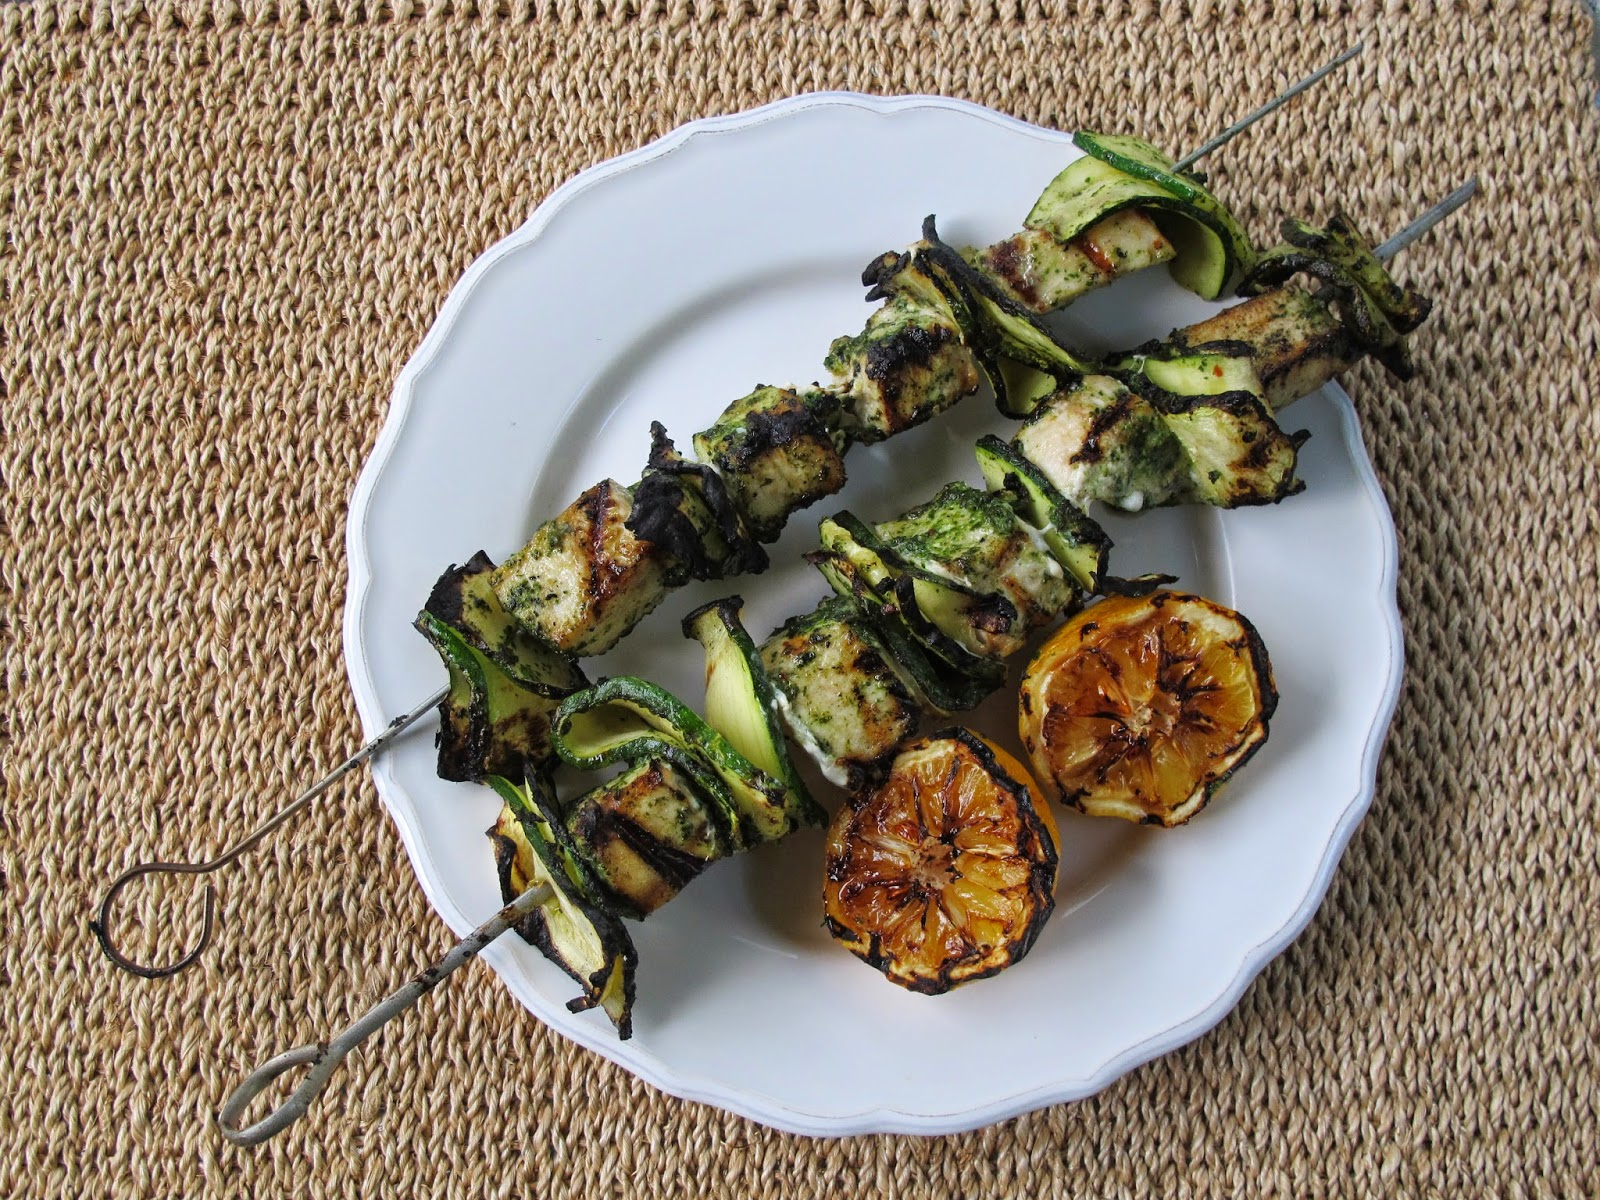 Grilled Swordfish & Zucchini Skewers with Cilantro Salsa Verde